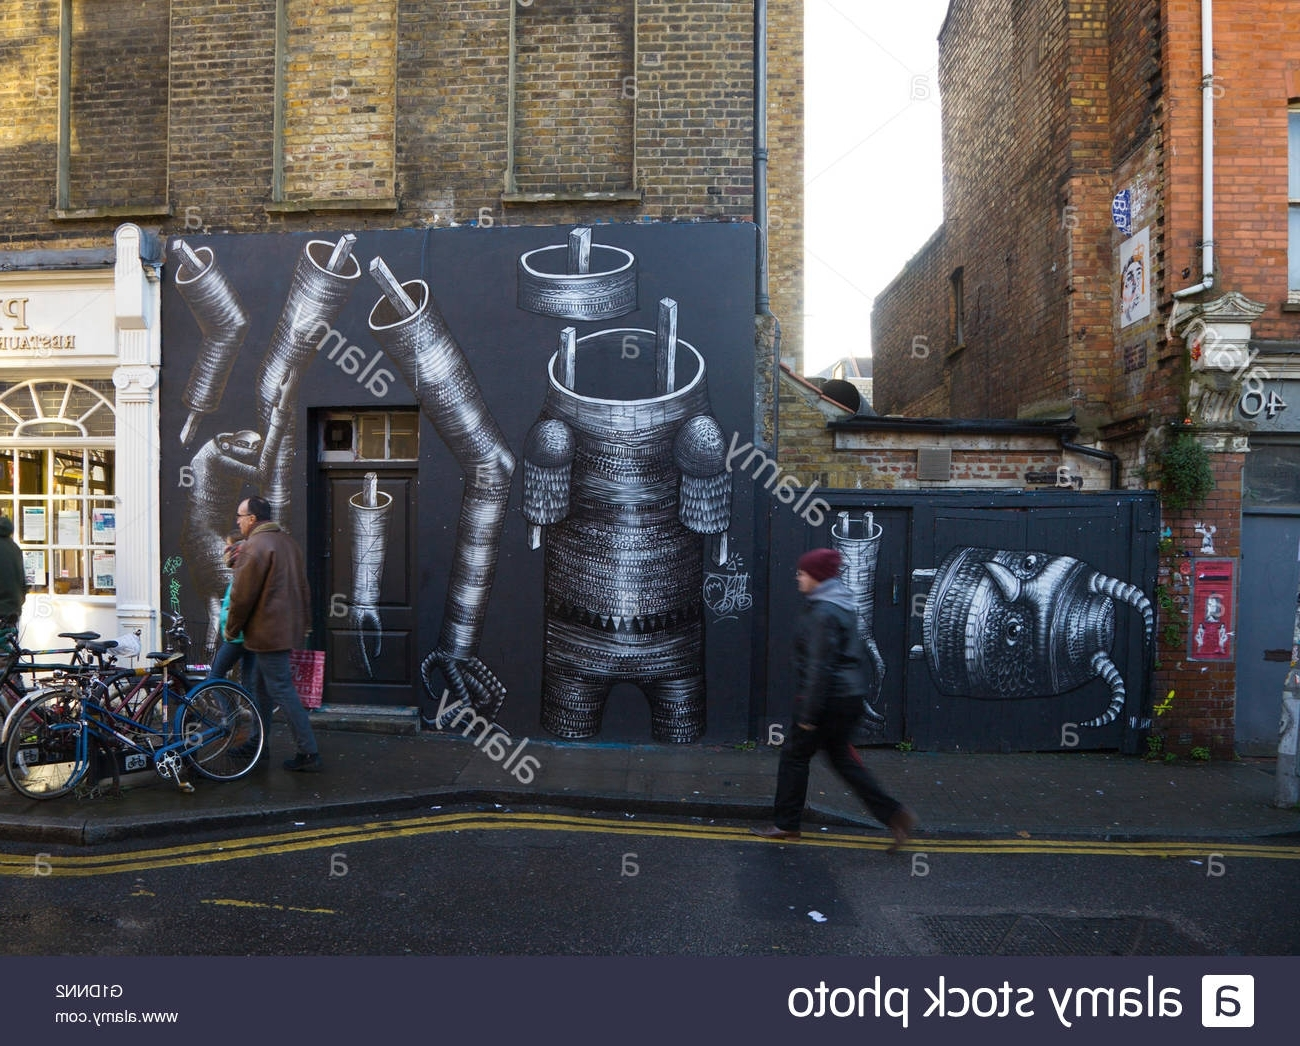 Scene In Hanbury Street, East London (View 14 of 15)